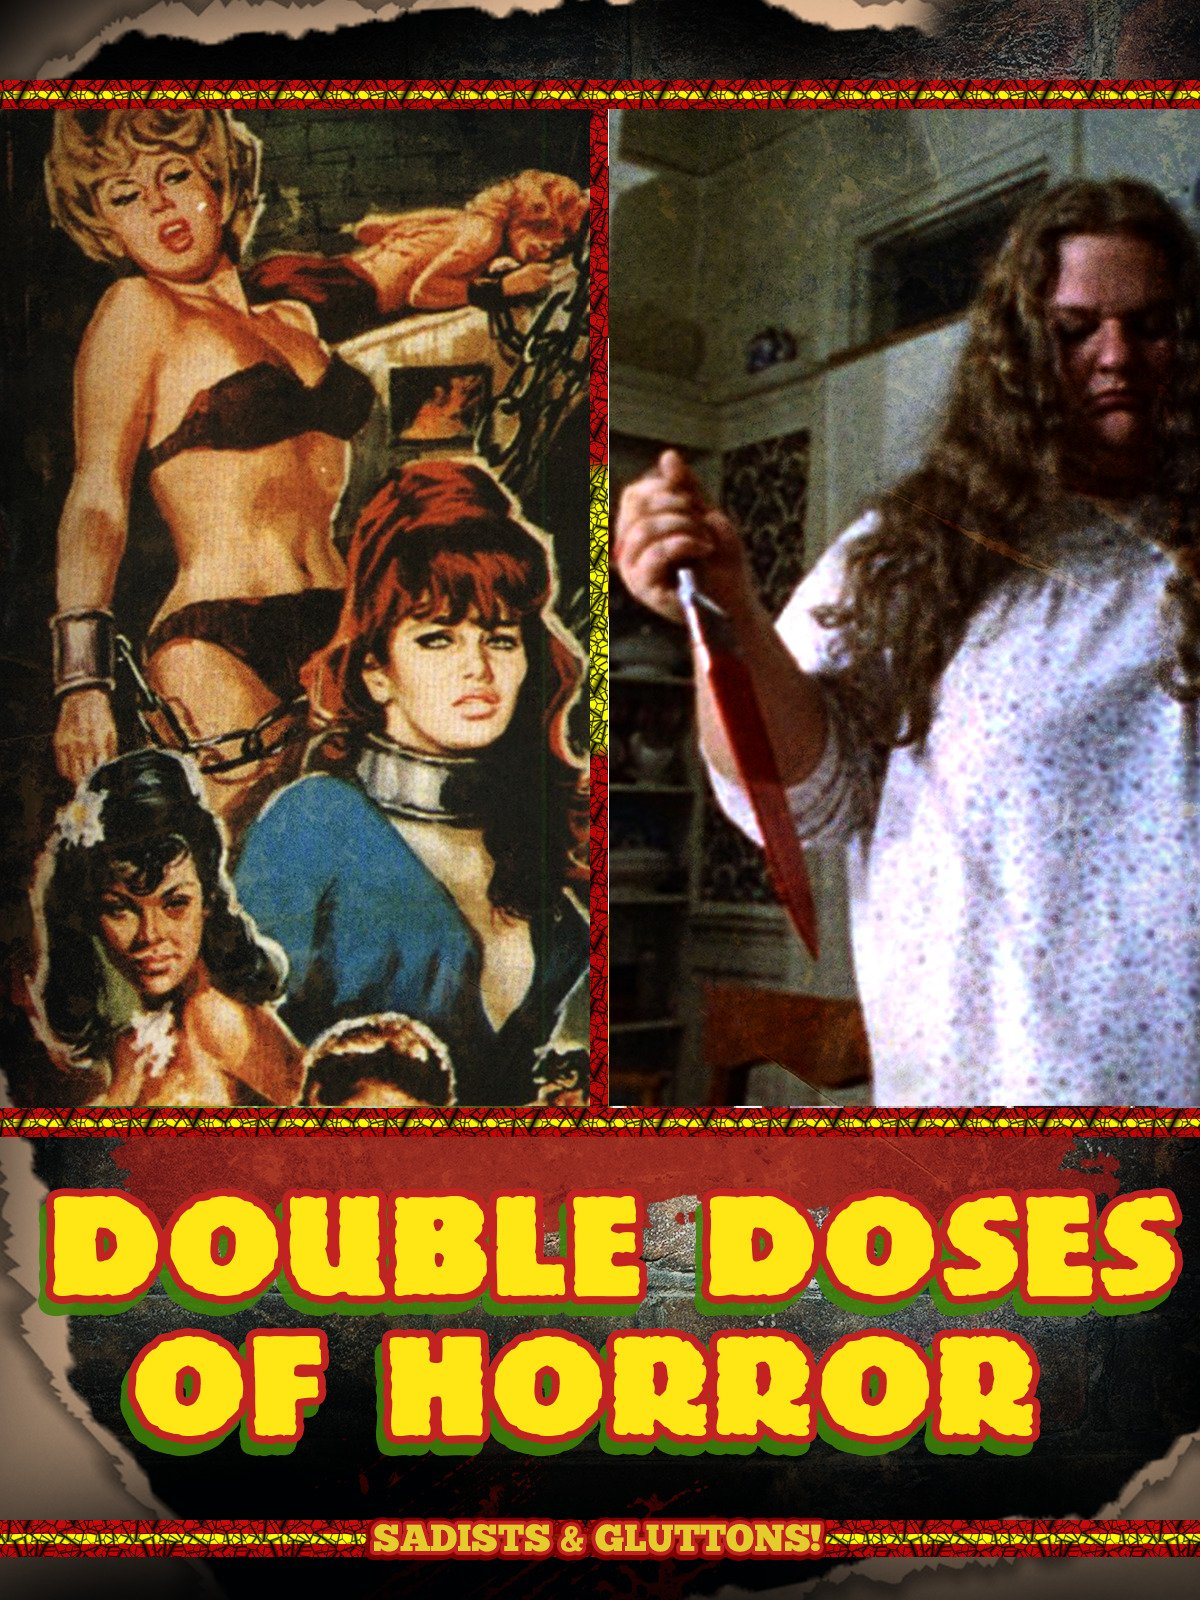 Double Doses of Horror: Sadists & Gluttons!